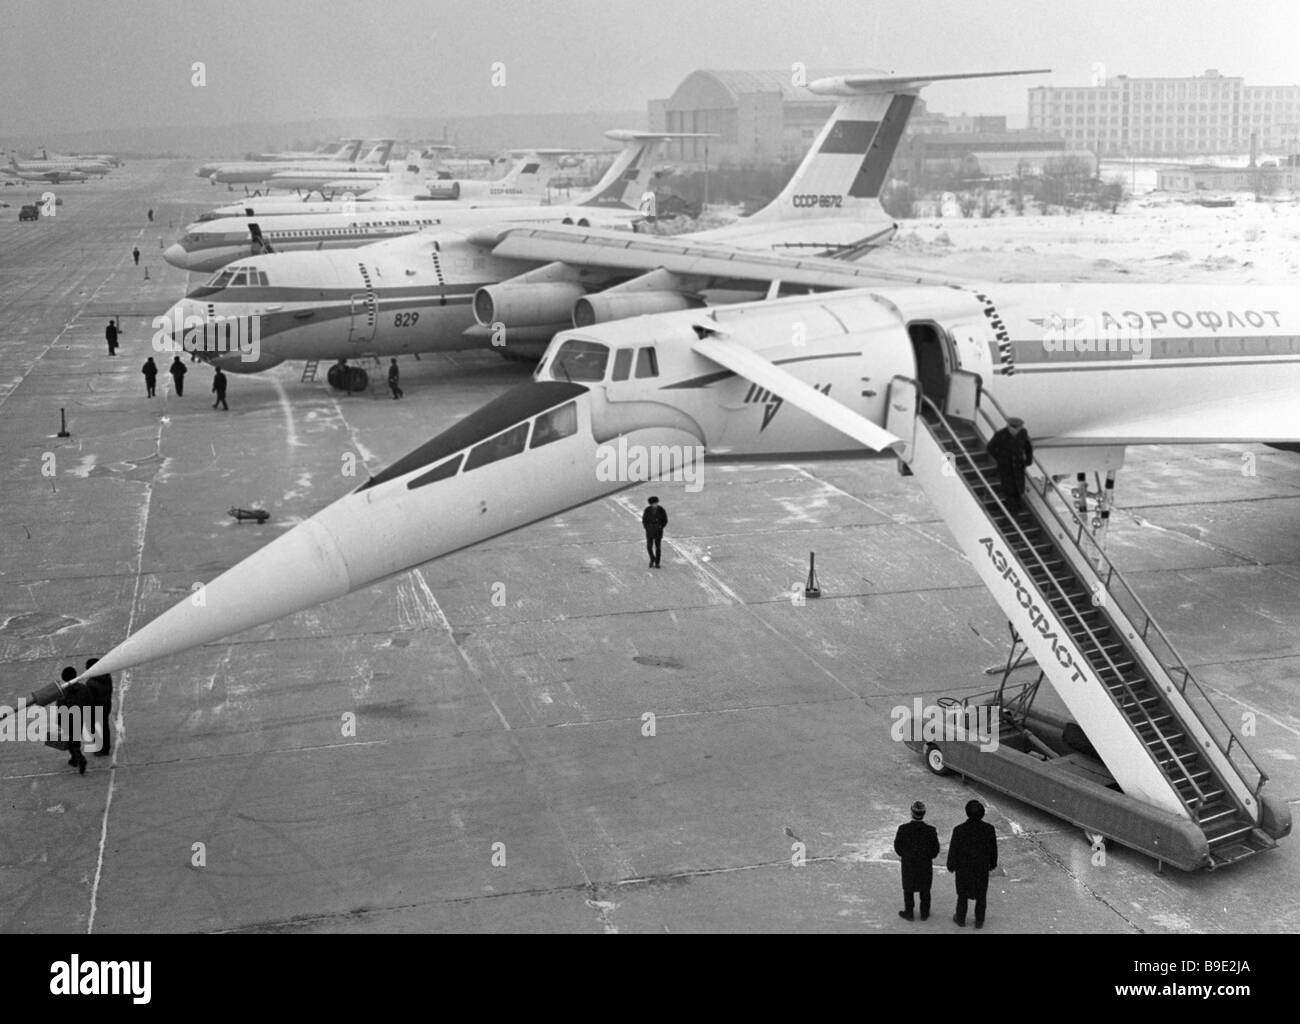 Civilian aircraft on display at an aviation equipment show in Sheremetyevo airport - Stock Image